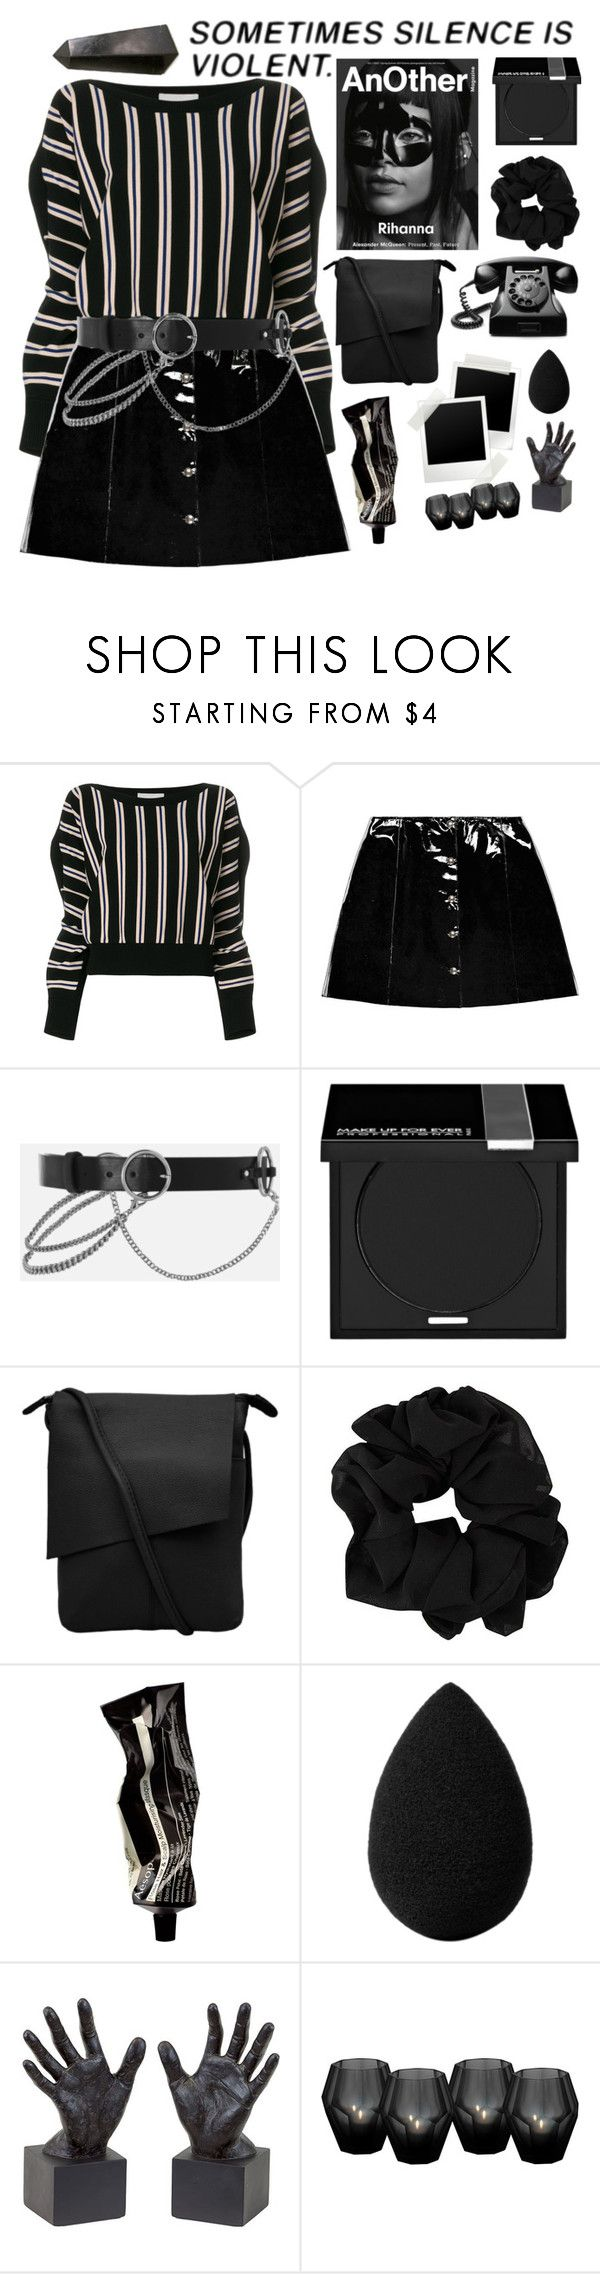 """""""Sometimes silence is violent."""" by shadowofday ❤ liked on Polyvore featuring 3.1 Phillip Lim, Veil London, Topshop, Alexander McQueen, MAKE UP FOR EVER, Aesop, beautyblender, Dot & Bo, Eichholtz and NOVICA"""